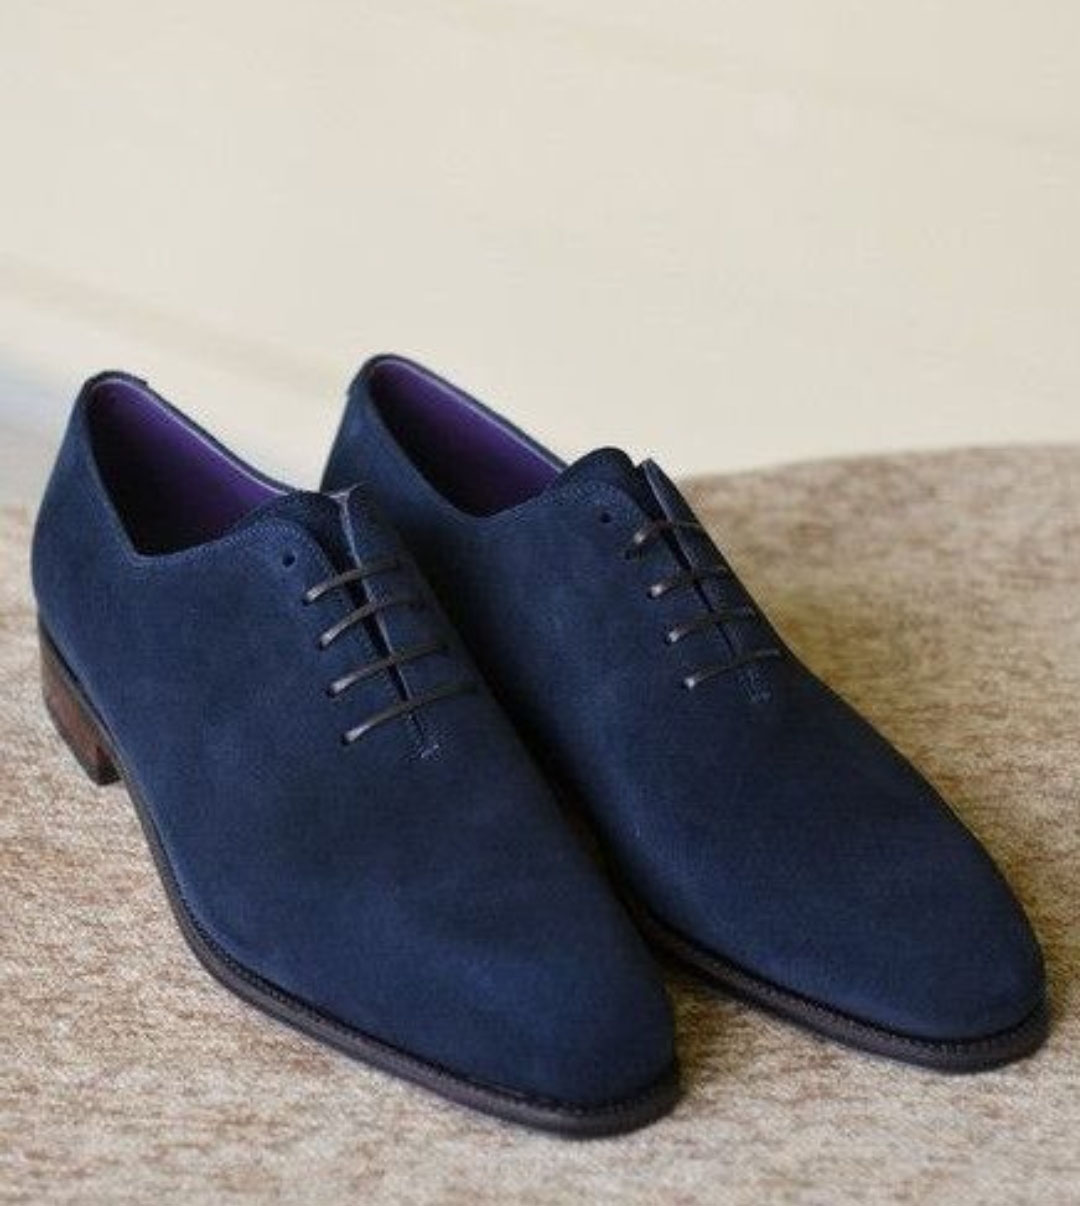 Handmade Navy Blue Suede Lace Up Shoes